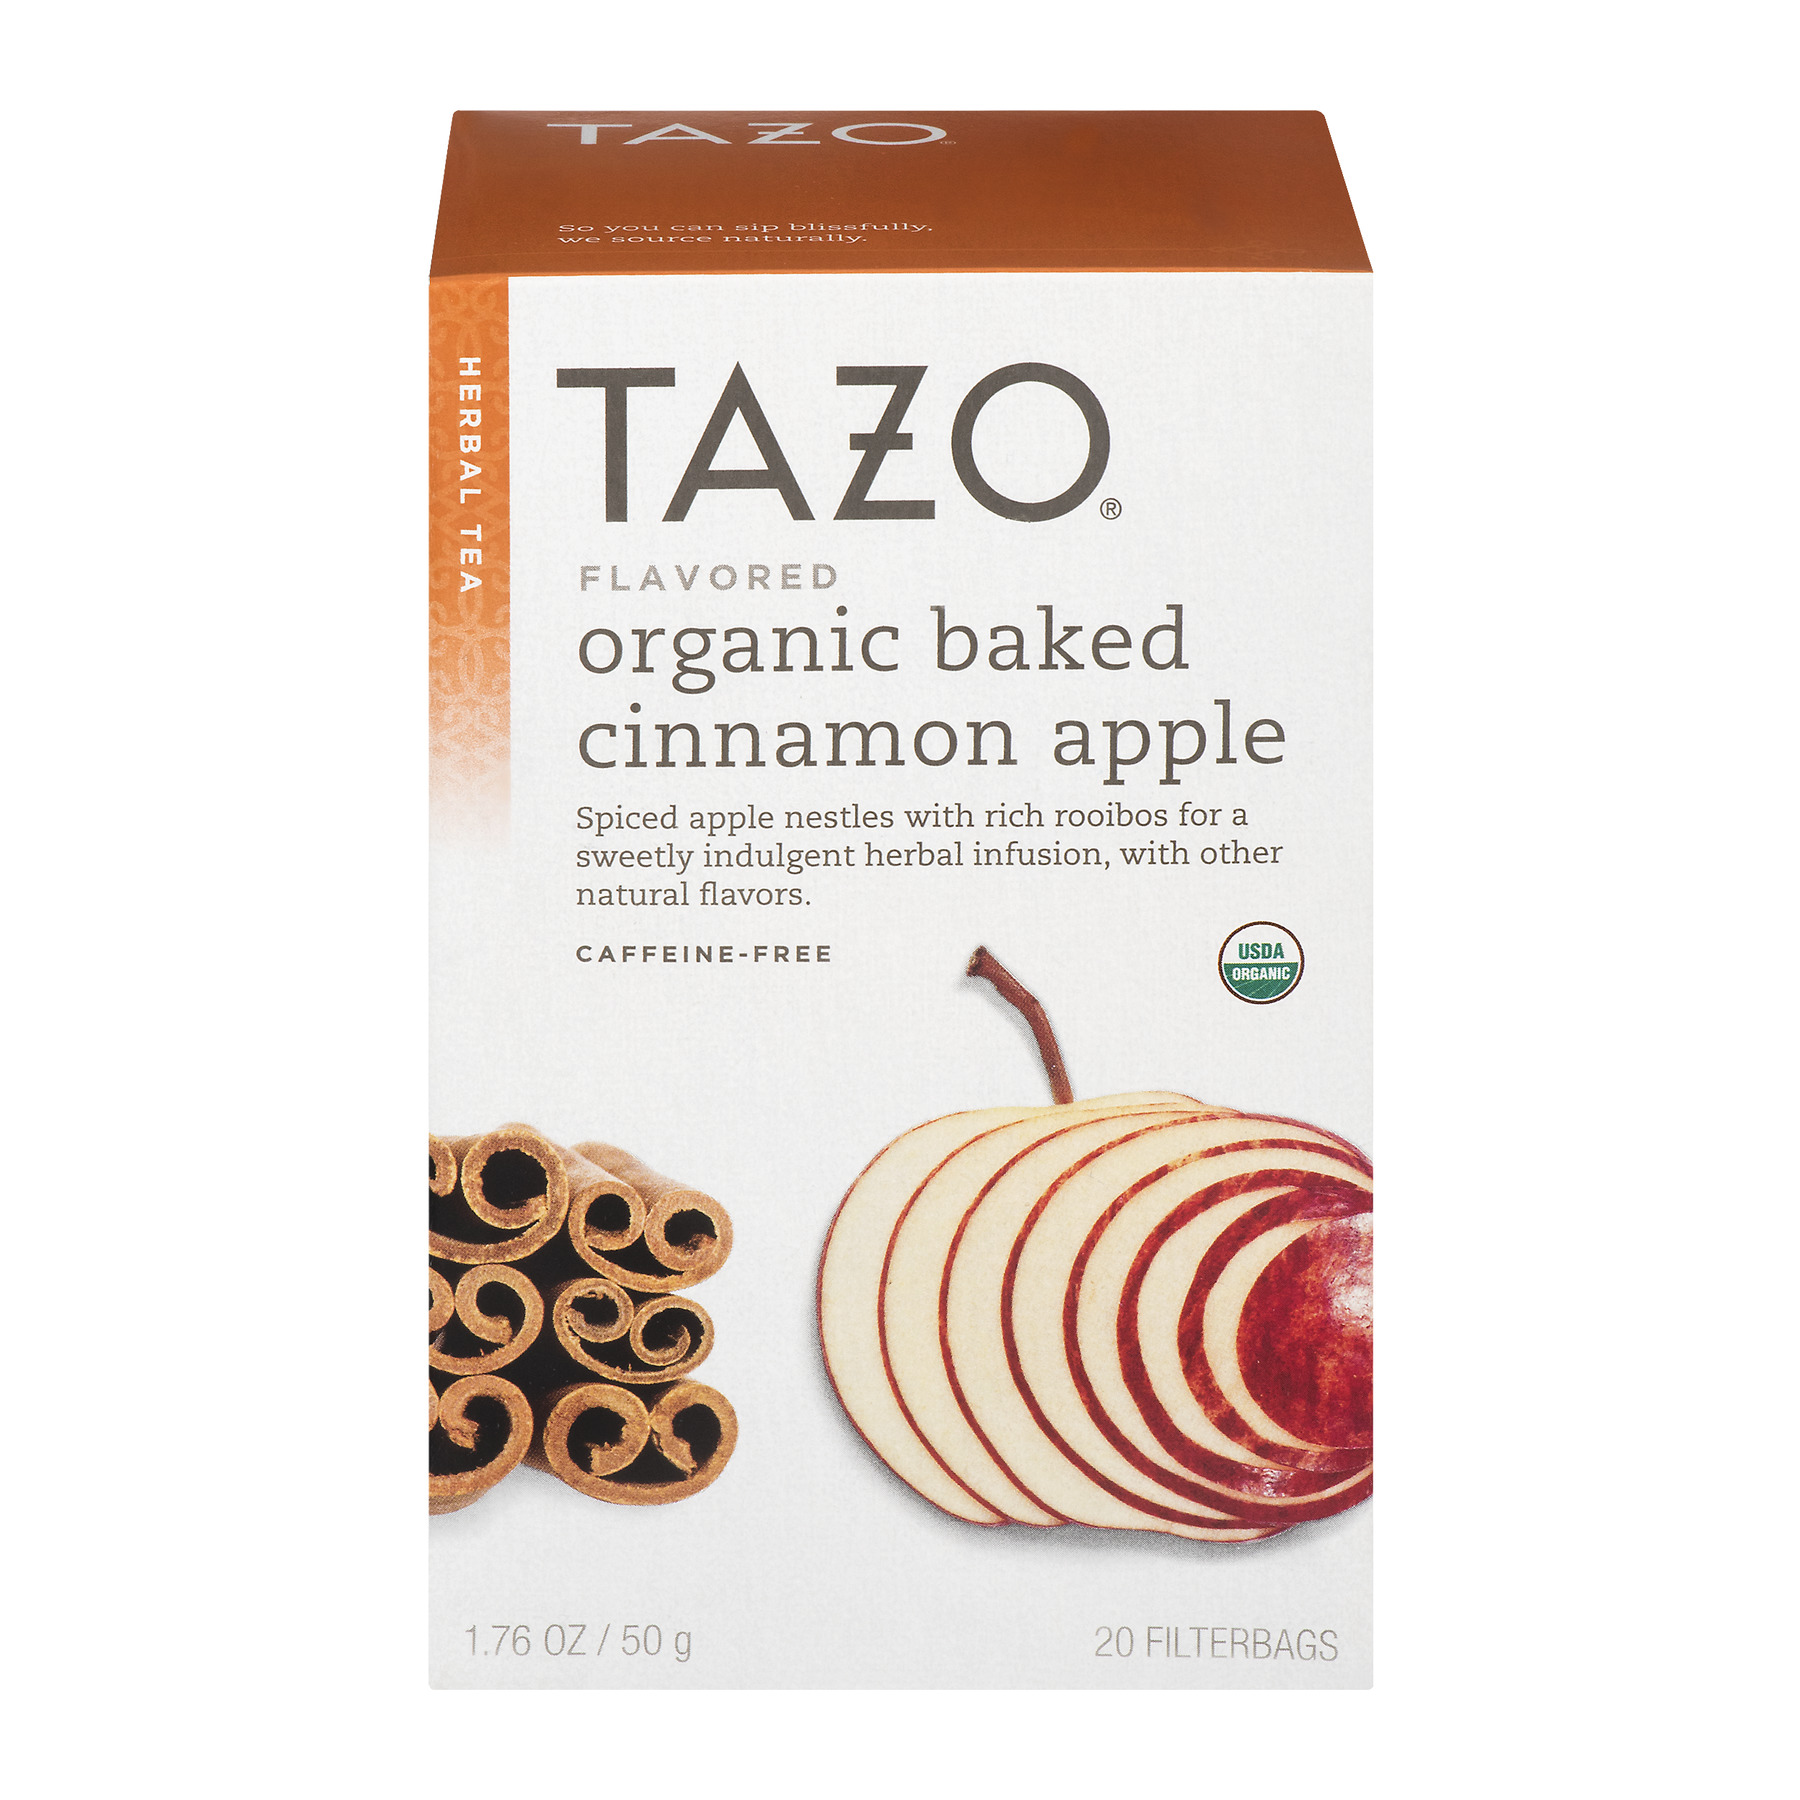 Tazo® Organic Baked Cinnamon Apple Caffeine-Free Herbal Tea Tea Bags 20 ct. Box